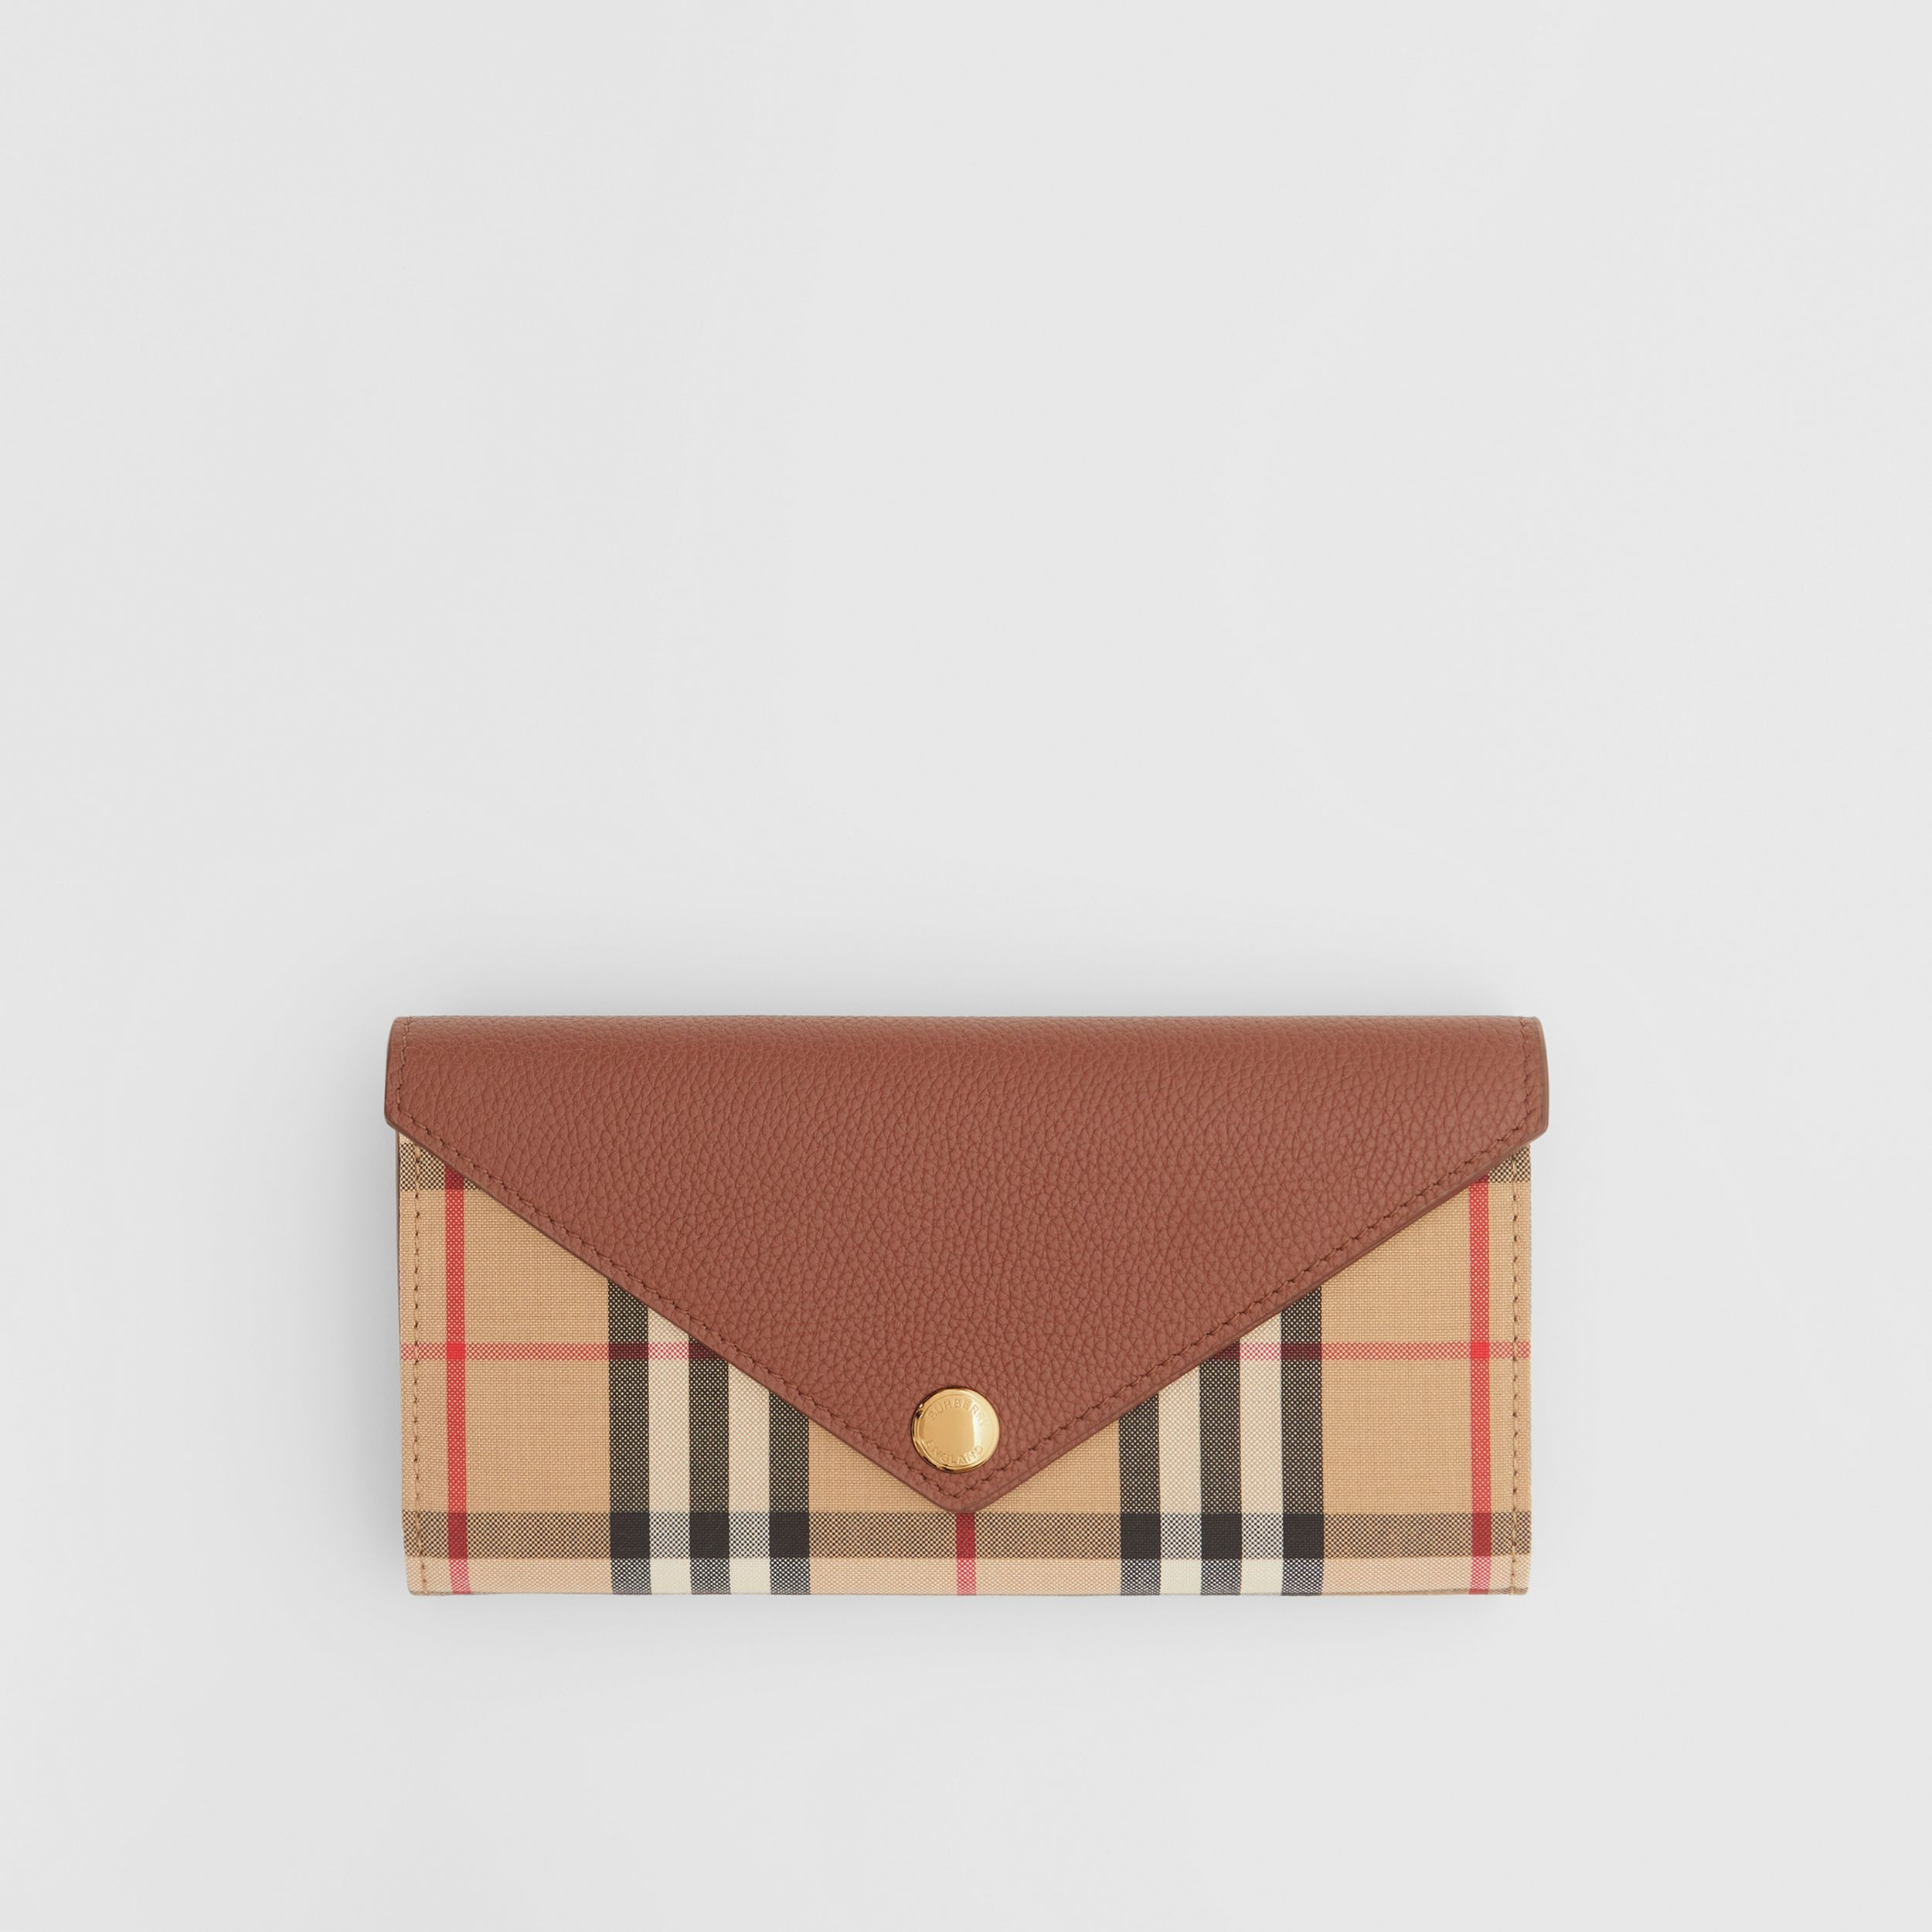 Vintage Check and Leather Continental Wallet in Tan - Women | Burberry - 1